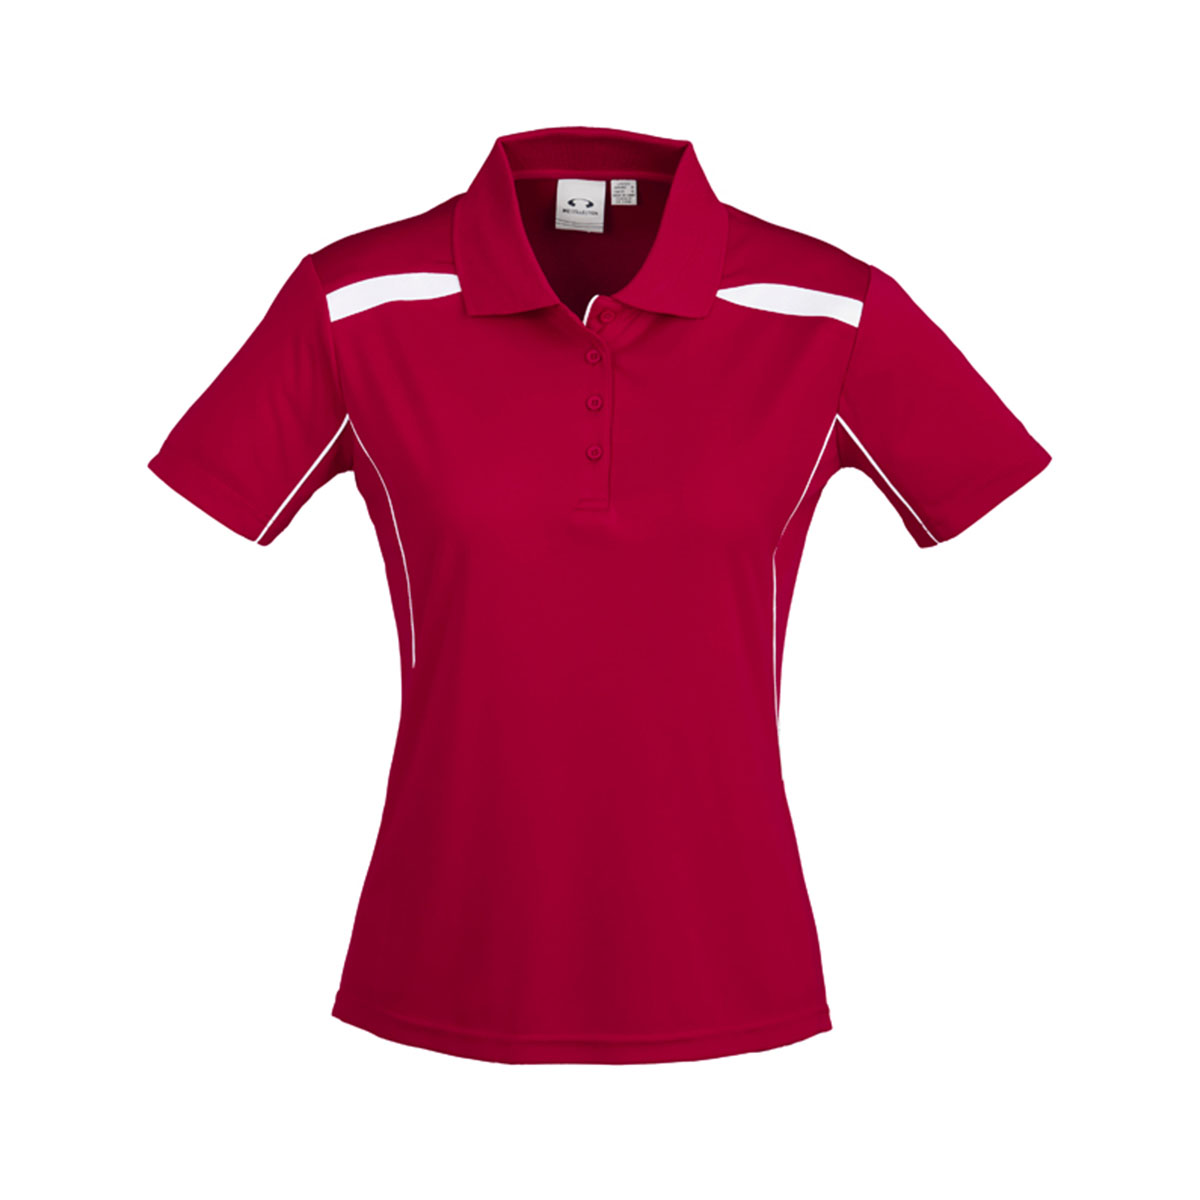 Ladies United Short Sleeve Polo-Red / White